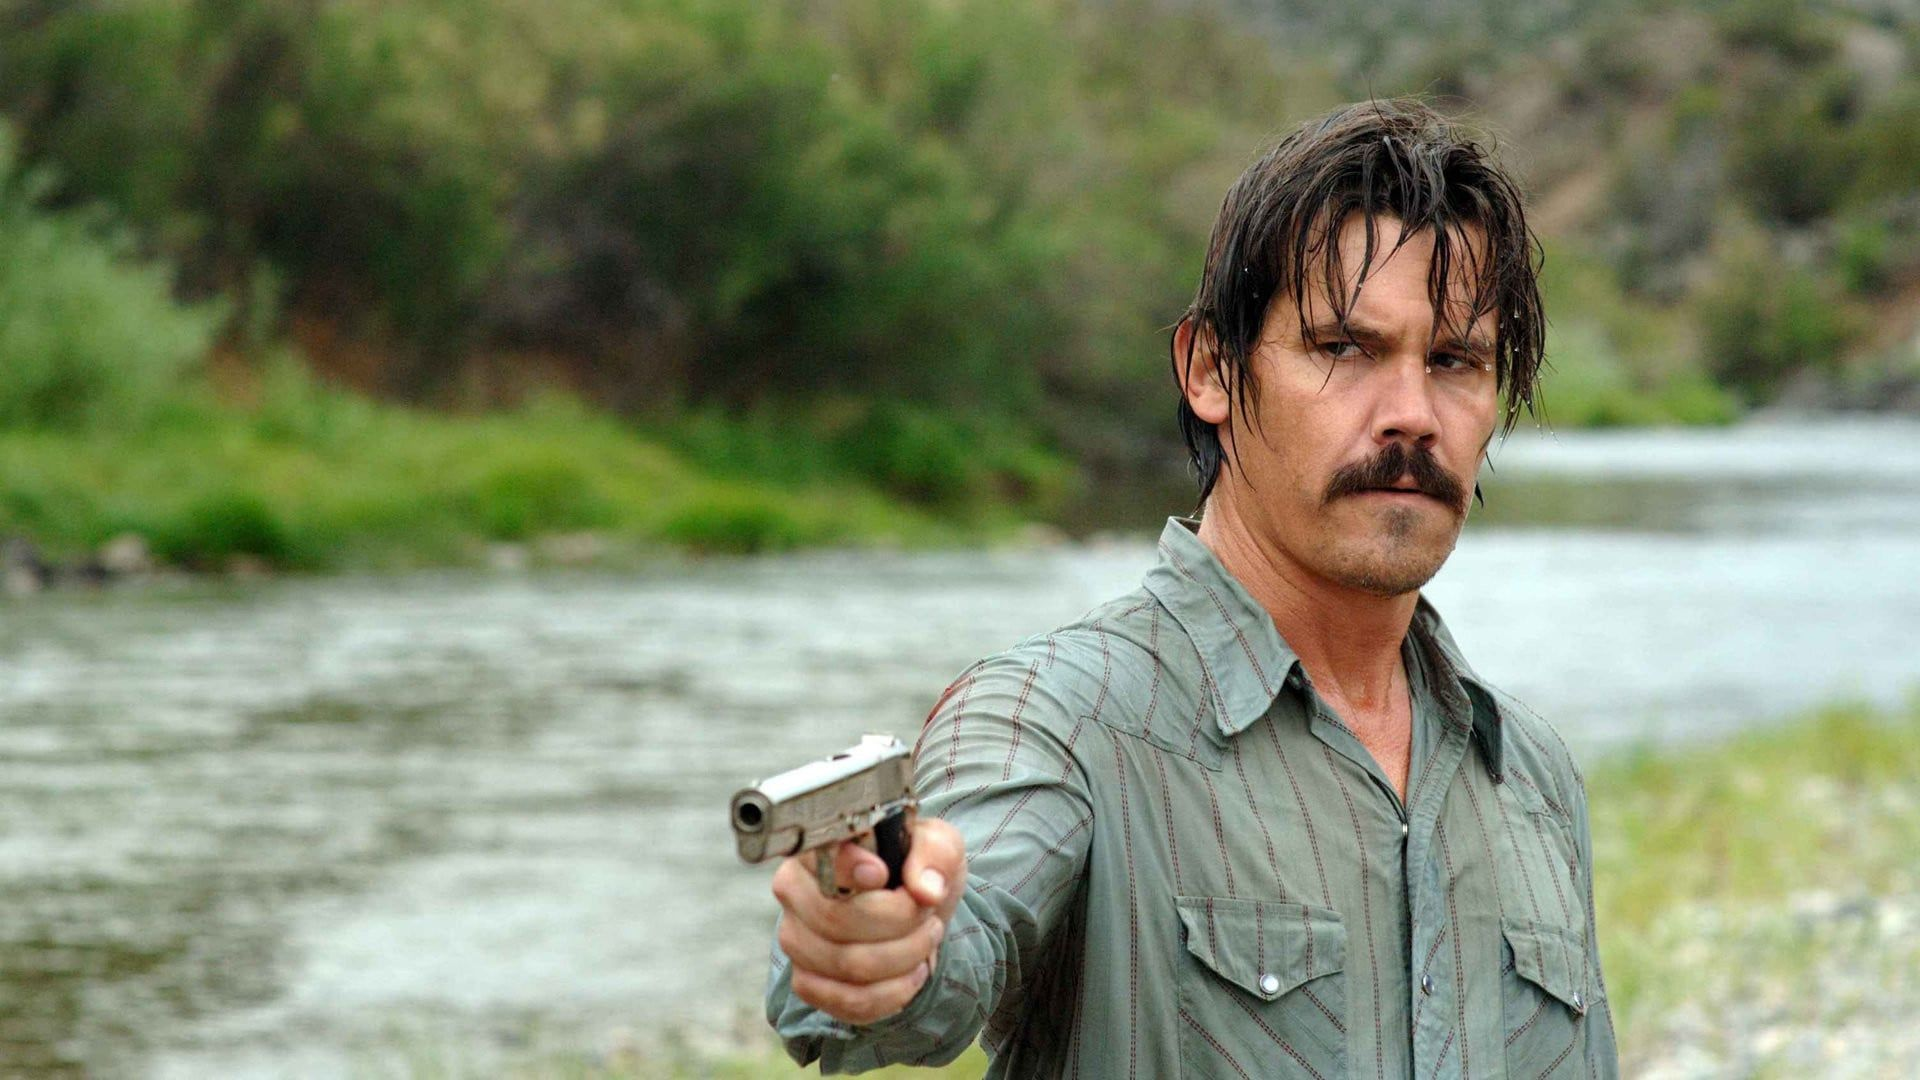 No Country For Old Men Cast And Crew List Metareel Com Josh blaylock (born march 29, 1990) is an american actor. no country for old men cast and crew